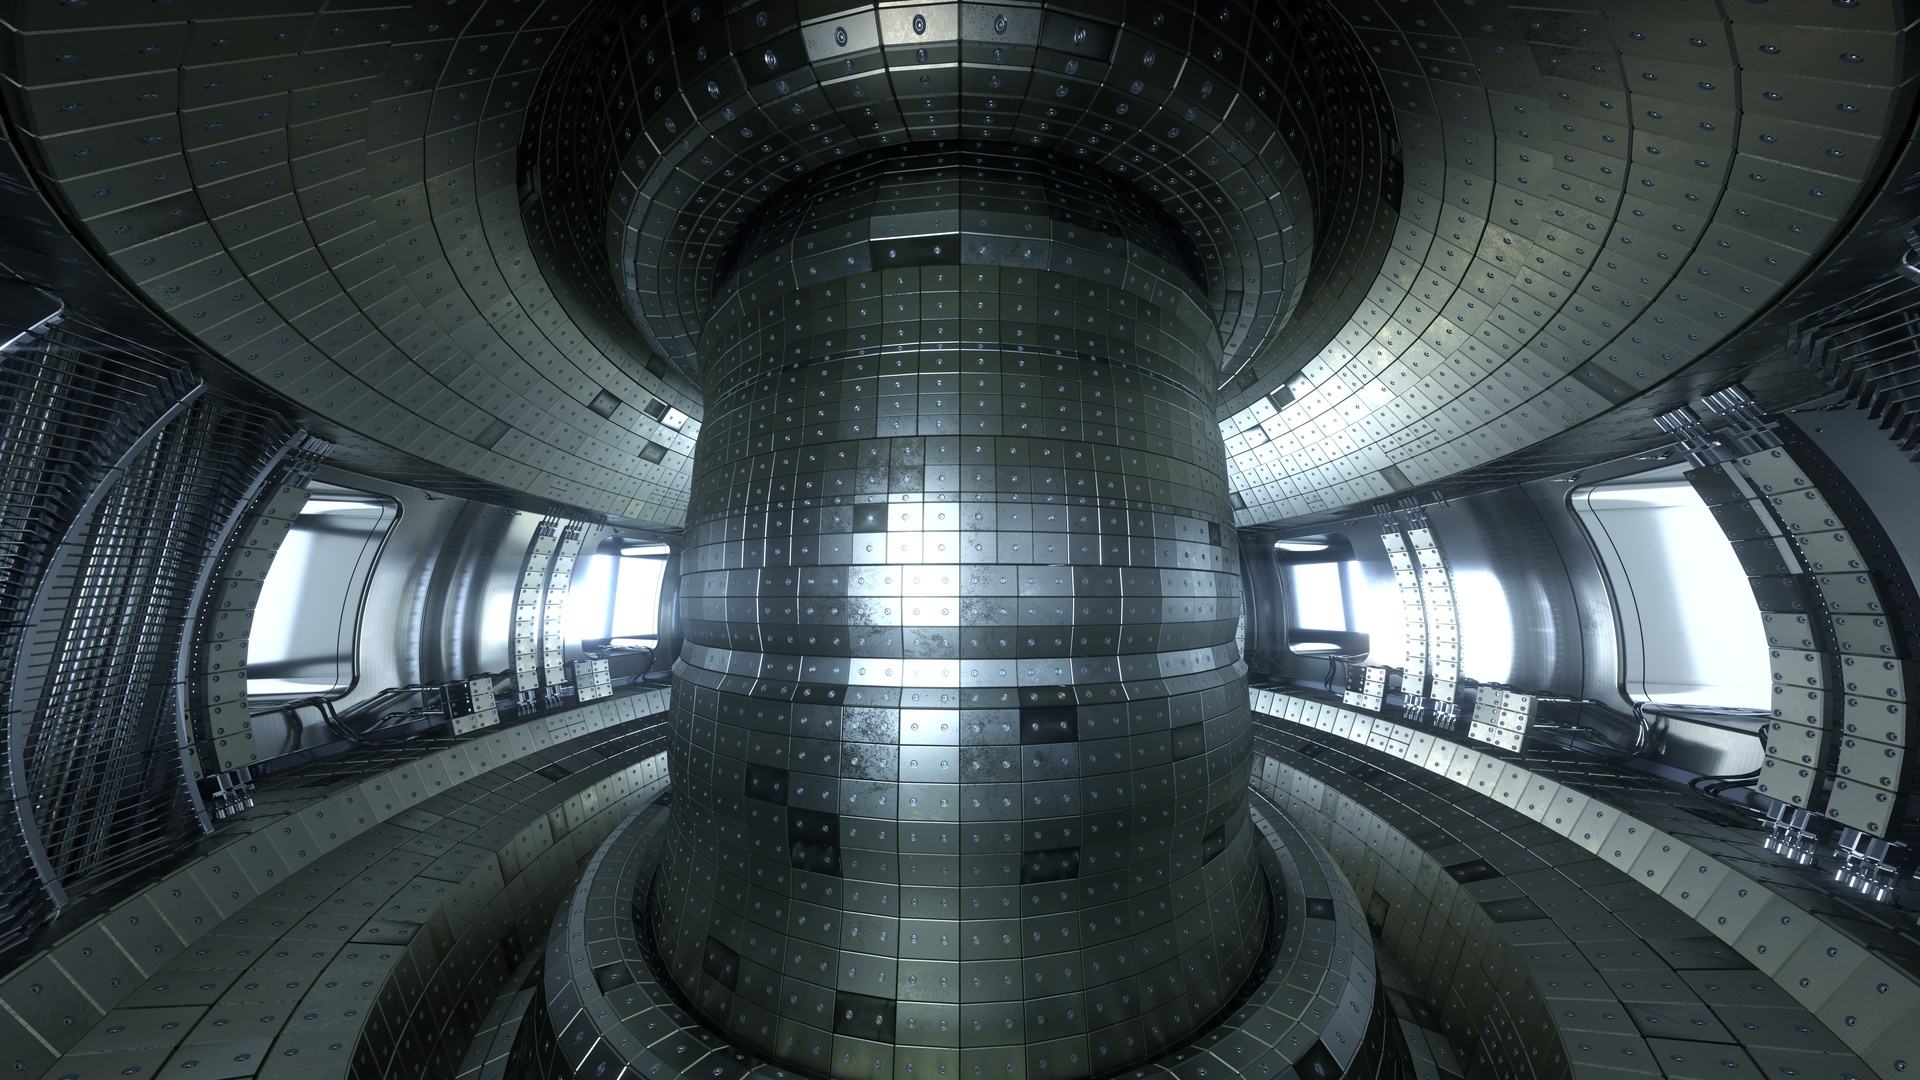 Thermonuclear torus fusion reactor chamber. Very detailed and beautiful artistic illustration